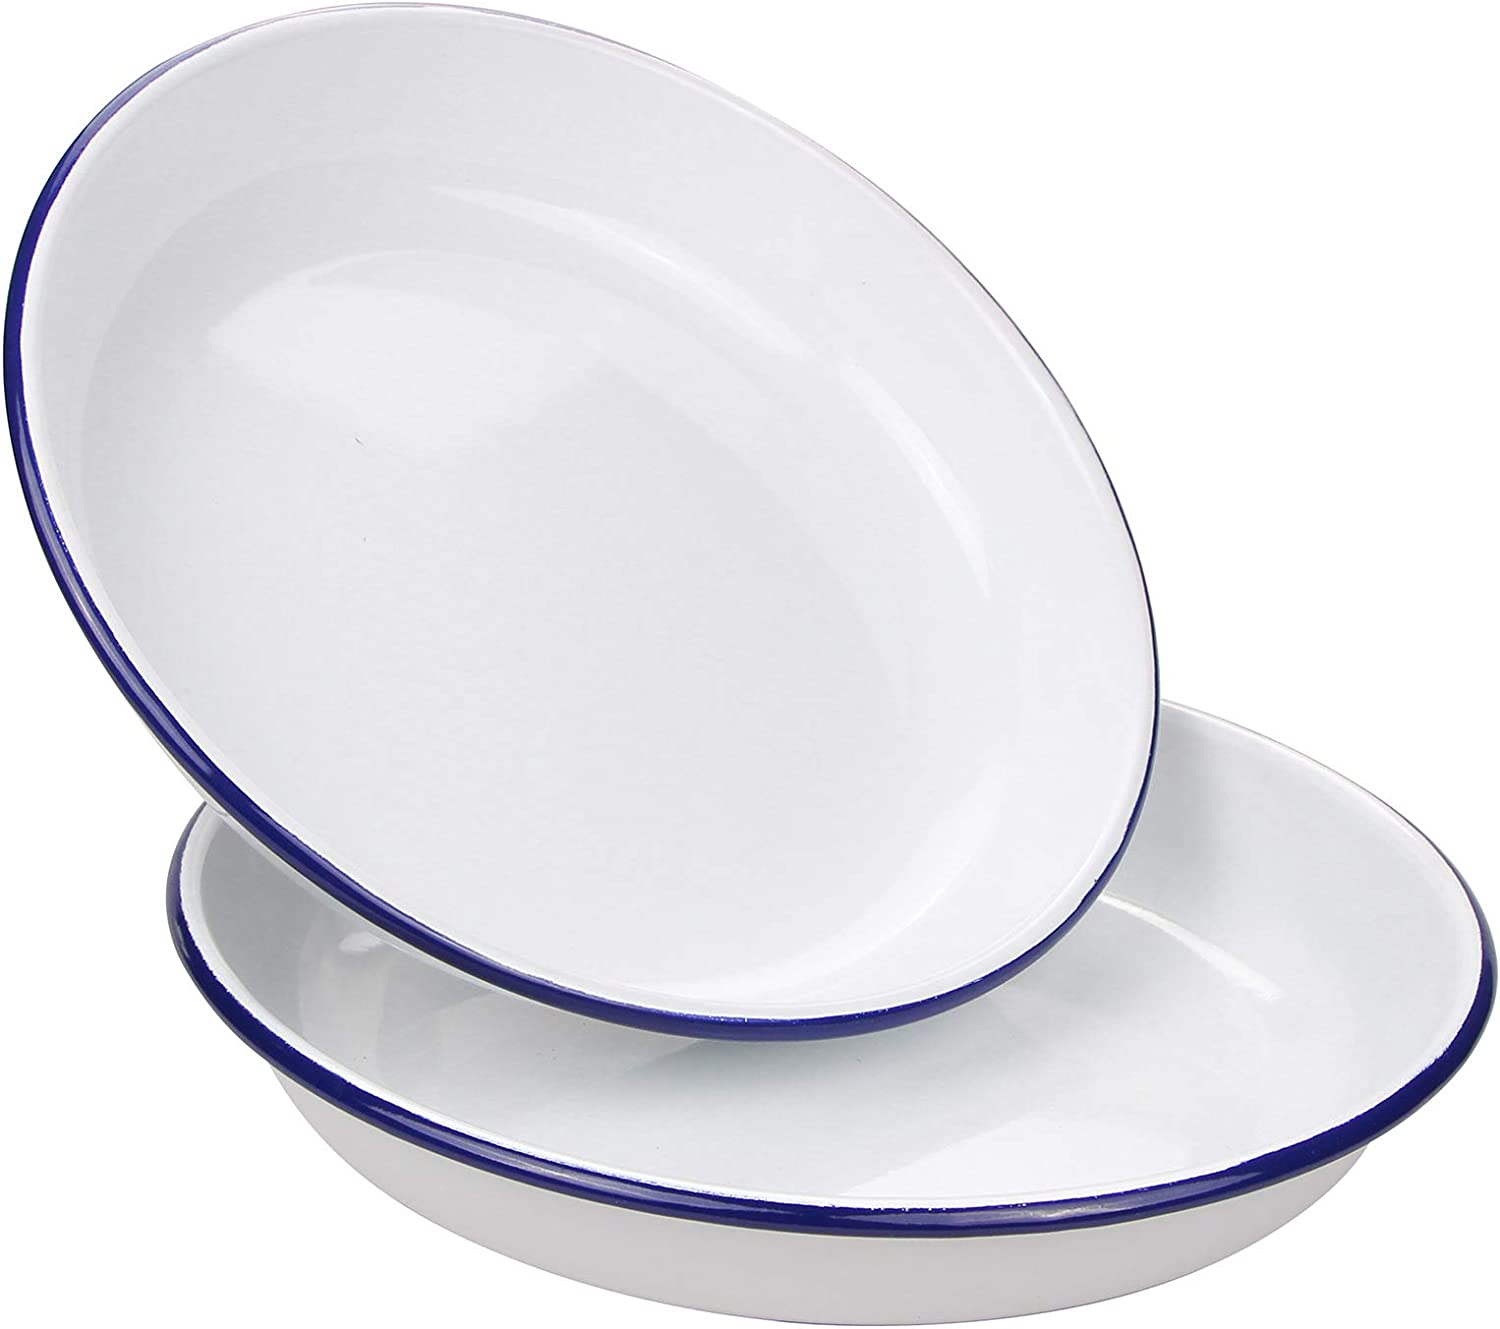 Webake 9.5 Inch Enamel Plates, 2 Pack Salad Pasta Bowls Enamelware Dinner Plates White Body with Blue Rim, Serving Trays for Dinner, Outdoor, Picnic, BBQ, Butter